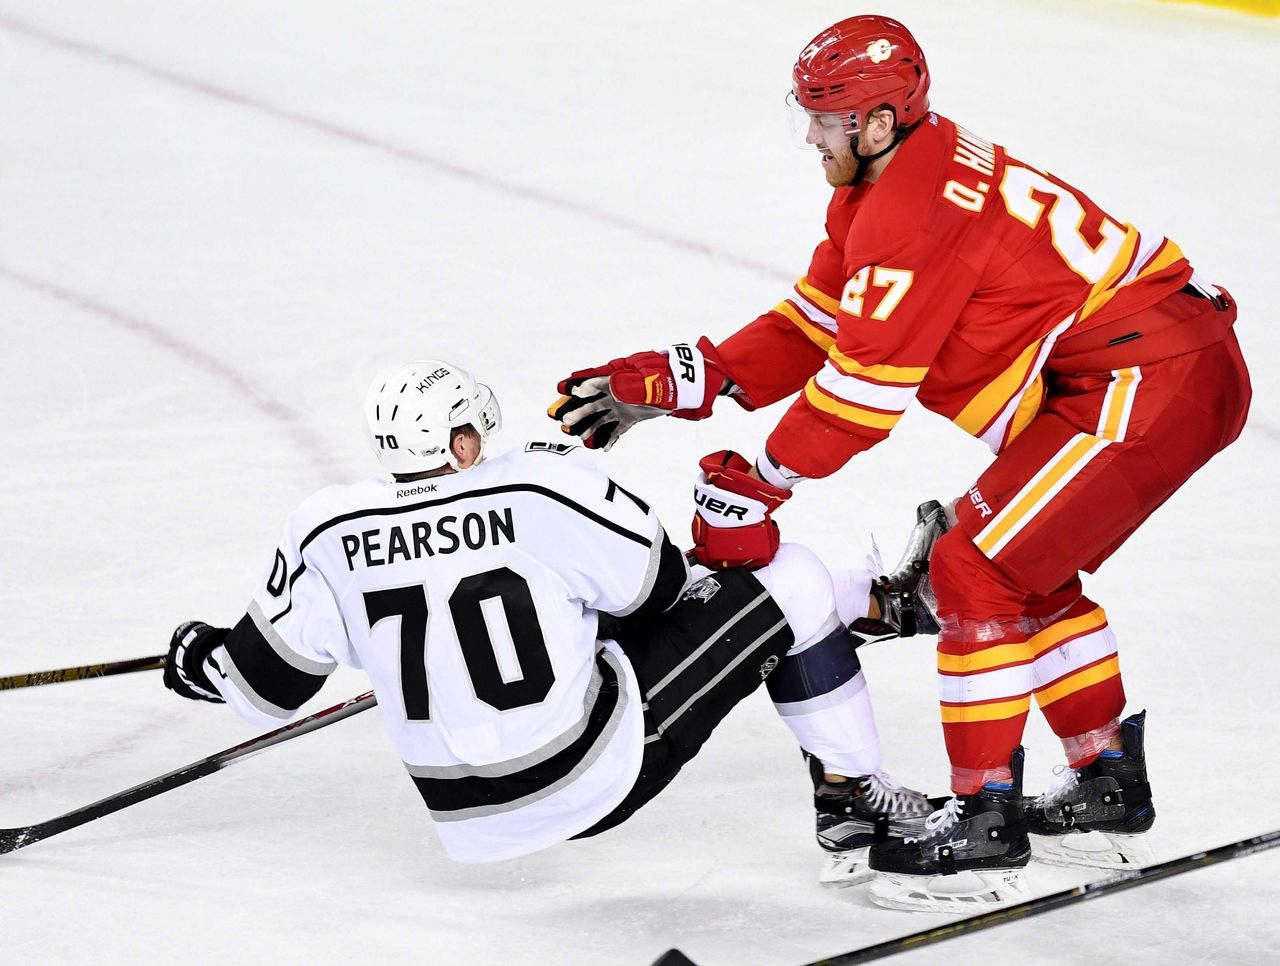 Cropped 2017 03 20t041644z 1023619796 nocid rtrmadp 3 nhl los angeles kings at calgary flames